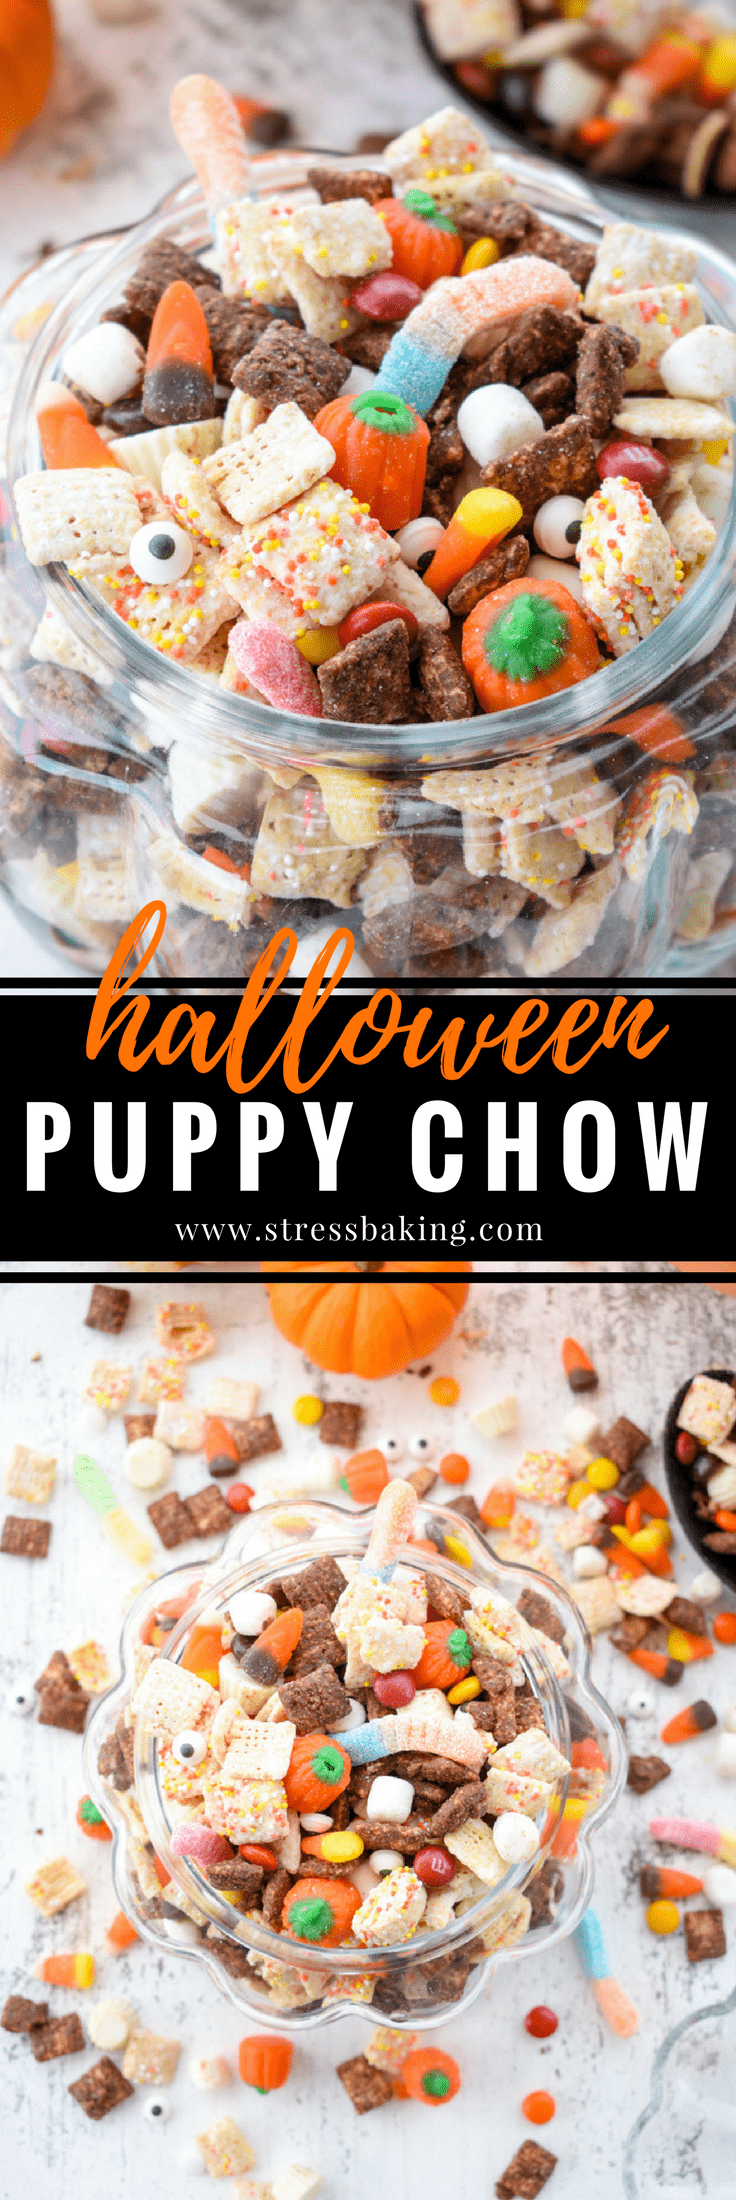 Halloween Puppy Chow: Whether you call it puppy chow or muddy buddies, the addition of Halloween candy and autumn colors turn this into the perfect festive party snack!   stressbaking.com